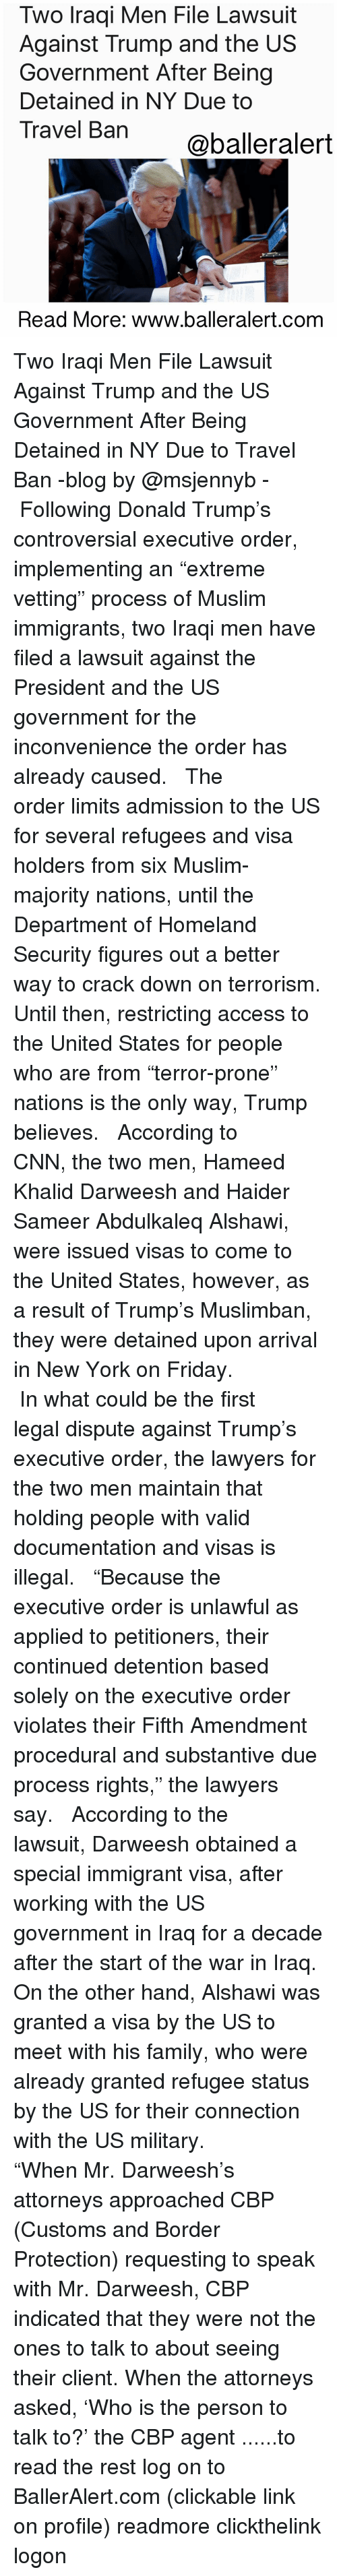 """indices: Two Iraqi Men File Lawsuit  Against Trump and the US  Government After Being  Detained in NY Due to  Travel Ban  @baller alert  Read More: www.balleralert.com Two Iraqi Men File Lawsuit Against Trump and the US Government After Being Detained in NY Due to Travel Ban -blog by @msjennyb - ⠀⠀⠀⠀⠀⠀⠀ ⠀⠀⠀⠀⠀⠀⠀ Following Donald Trump's controversial executive order, implementing an """"extreme vetting"""" process of Muslim immigrants, two Iraqi men have filed a lawsuit against the President and the US government for the inconvenience the order has already caused. ⠀⠀⠀⠀⠀⠀⠀ ⠀⠀⠀⠀⠀⠀⠀ The order limits admission to the US for several refugees and visa holders from six Muslim-majority nations, until the Department of Homeland Security figures out a better way to crack down on terrorism. Until then, restricting access to the United States for people who are from """"terror-prone"""" nations is the only way, Trump believes. ⠀⠀⠀⠀⠀⠀⠀ ⠀⠀⠀⠀⠀⠀⠀ According to CNN, the two men, Hameed Khalid Darweesh and Haider Sameer Abdulkaleq Alshawi, were issued visas to come to the United States, however, as a result of Trump's Muslimban, they were detained upon arrival in New York on Friday. ⠀⠀⠀⠀⠀⠀⠀ ⠀⠀⠀⠀⠀⠀⠀ In what could be the first legal dispute against Trump's executive order, the lawyers for the two men maintain that holding people with valid documentation and visas is illegal. ⠀⠀⠀⠀⠀⠀⠀ ⠀⠀⠀⠀⠀⠀⠀ """"Because the executive order is unlawful as applied to petitioners, their continued detention based solely on the executive order violates their Fifth Amendment procedural and substantive due process rights,"""" the lawyers say. ⠀⠀⠀⠀⠀⠀⠀ ⠀⠀⠀⠀⠀⠀⠀ According to the lawsuit, Darweesh obtained a special immigrant visa, after working with the US government in Iraq for a decade after the start of the war in Iraq. On the other hand, Alshawi was granted a visa by the US to meet with his family, who were already granted refugee status by the US for their connection with the US military. ⠀⠀⠀⠀⠀⠀⠀ ⠀⠀⠀⠀⠀⠀⠀ """"When Mr. Darweesh's att"""